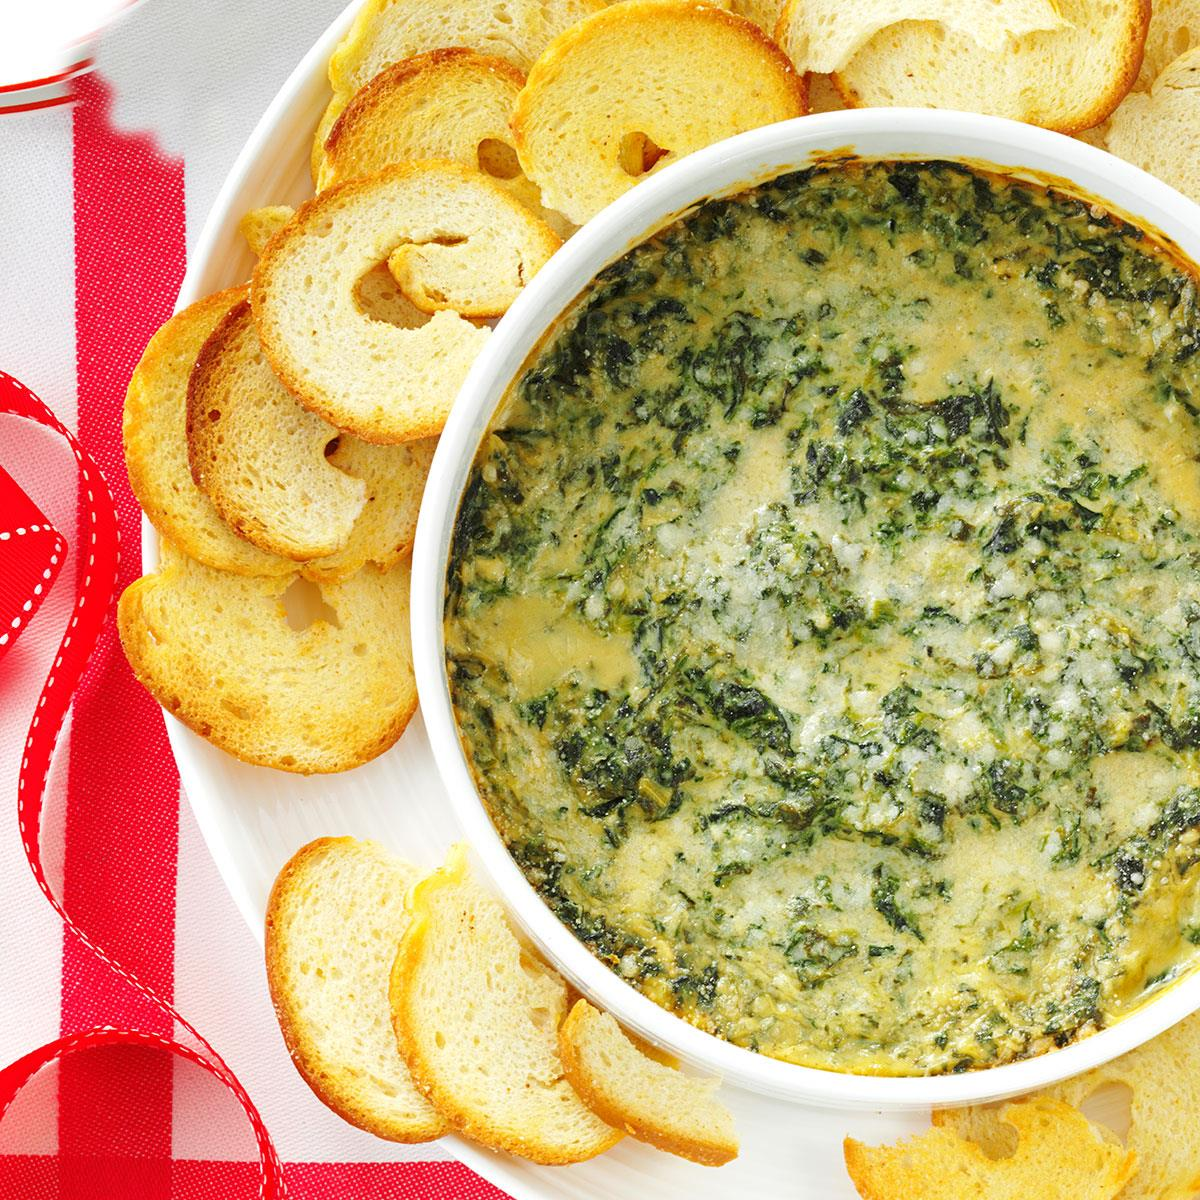 Baked Creamy Spinach Dip_image